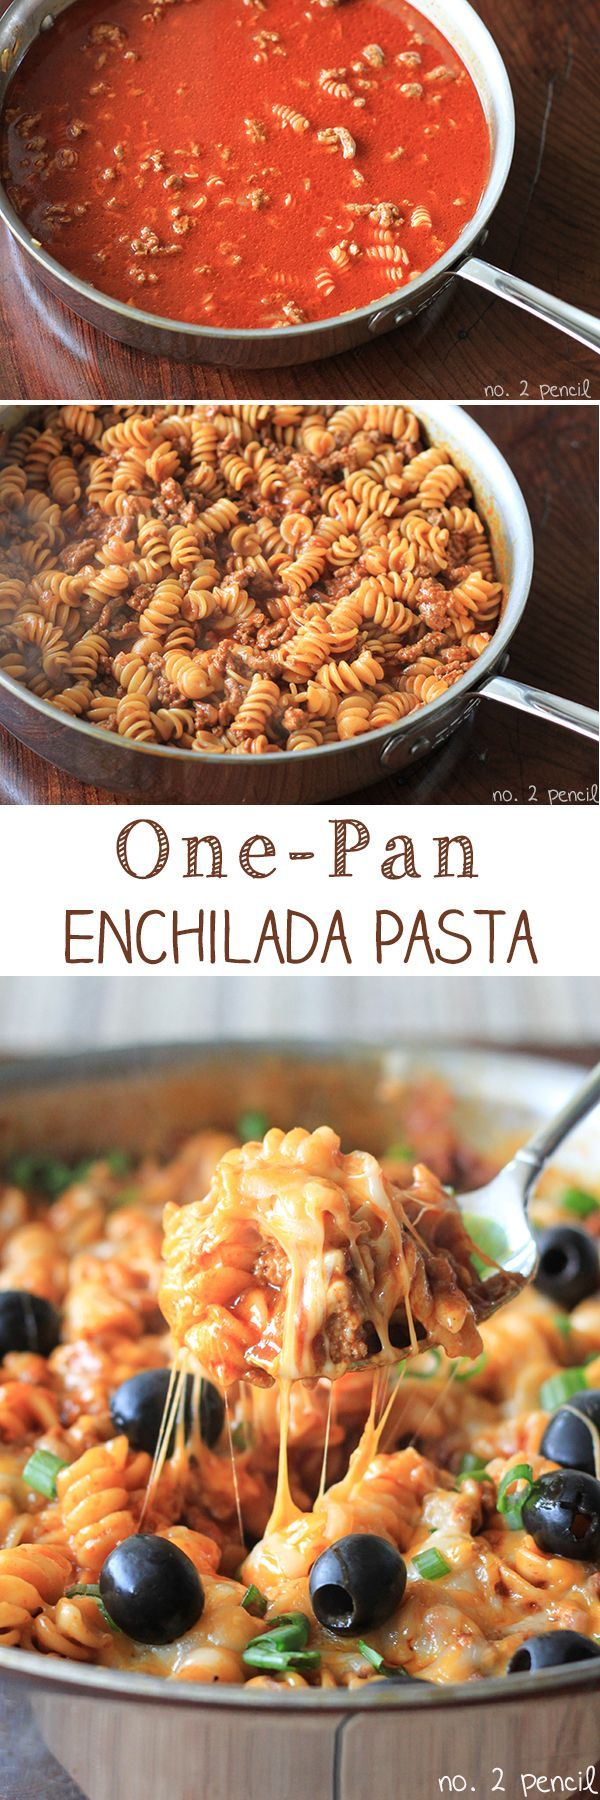 One-Pan Enchilada Pasta - so easy and so good !